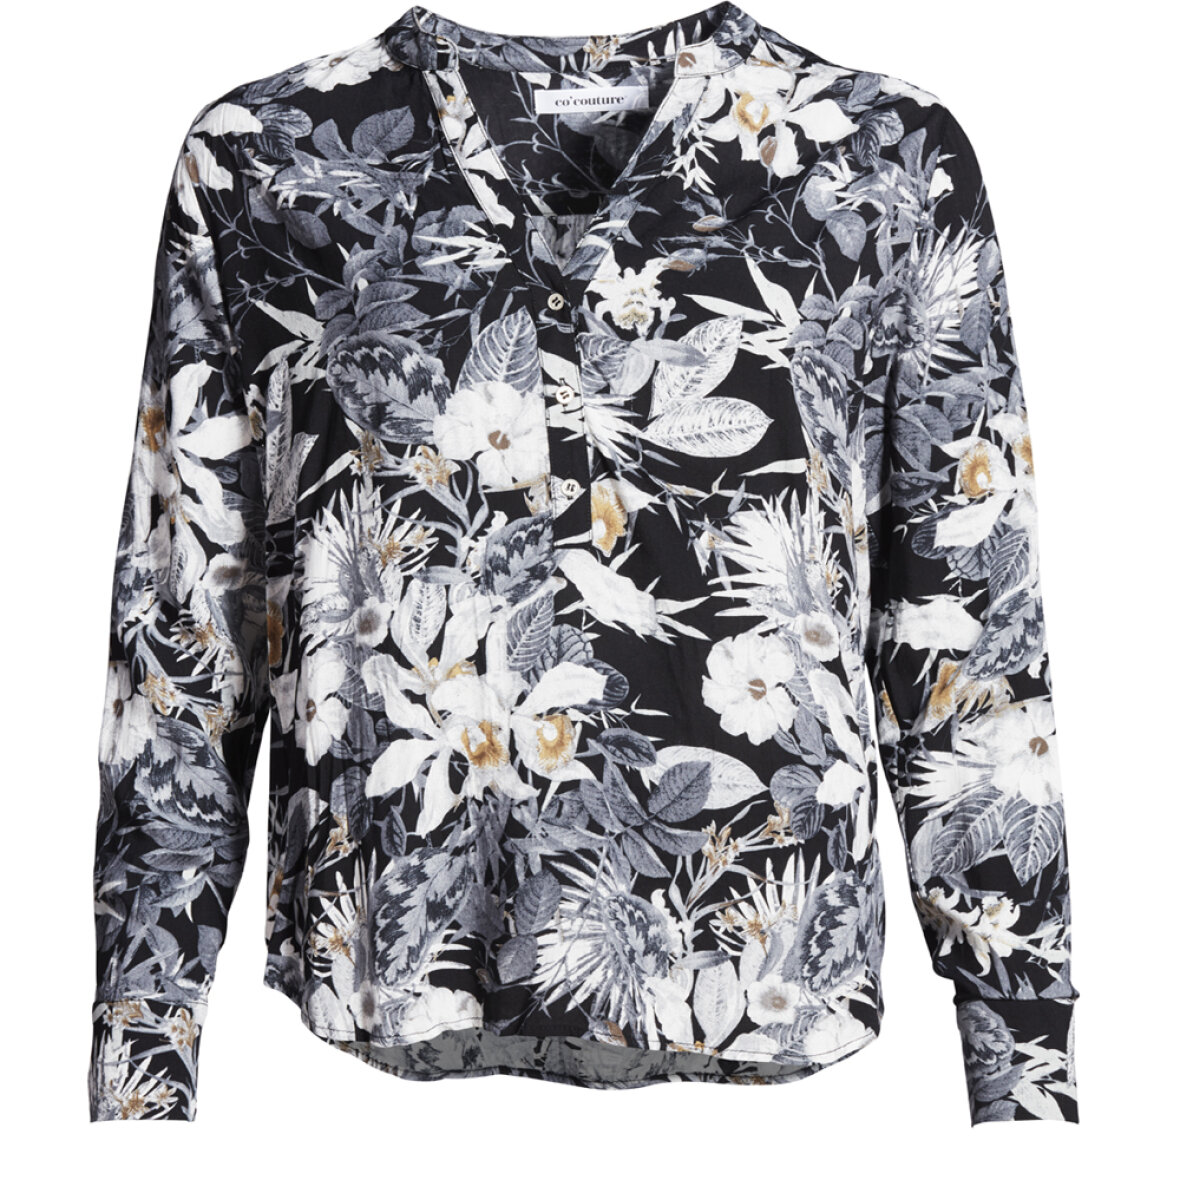 eea335efdfe TOPPE/T-SHIRT - CO COUTURE - COCO BLOMSTRET SKJORTE